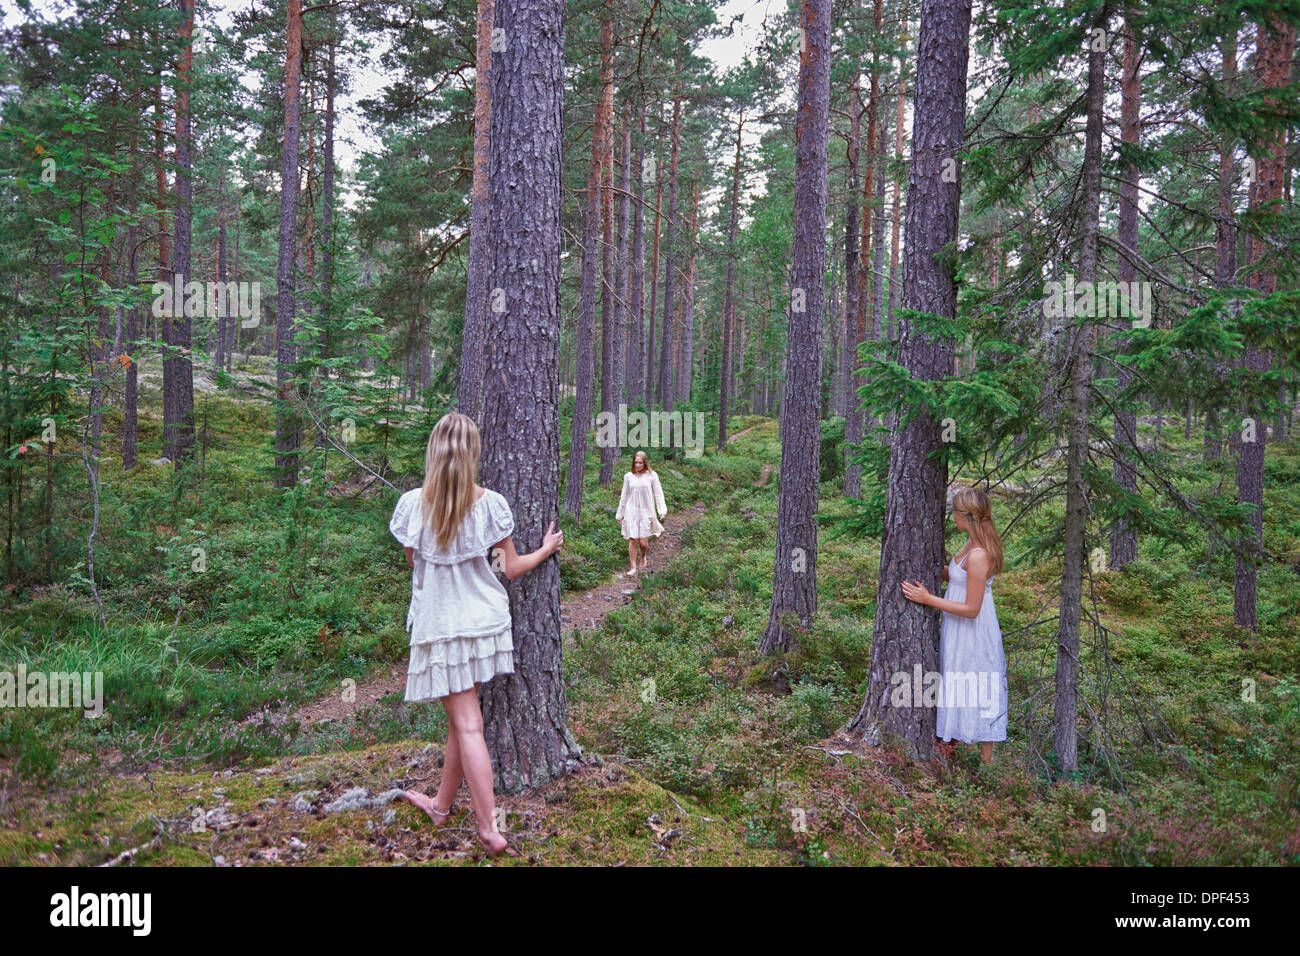 Teenage girls by tree trunks in forest - Stock Image